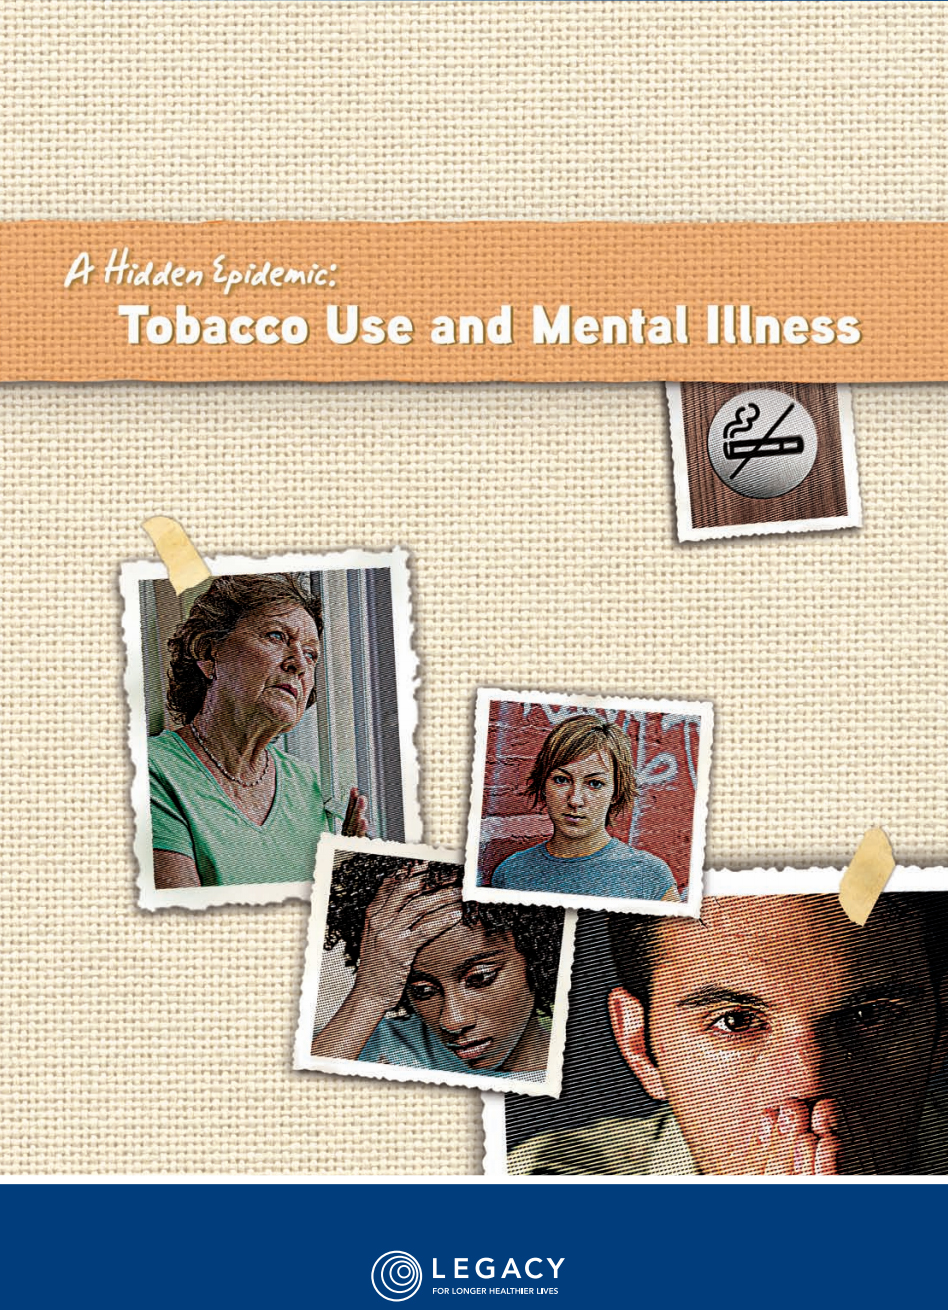 A Hidden Epidemic – Tobacco Use and Mental Illness